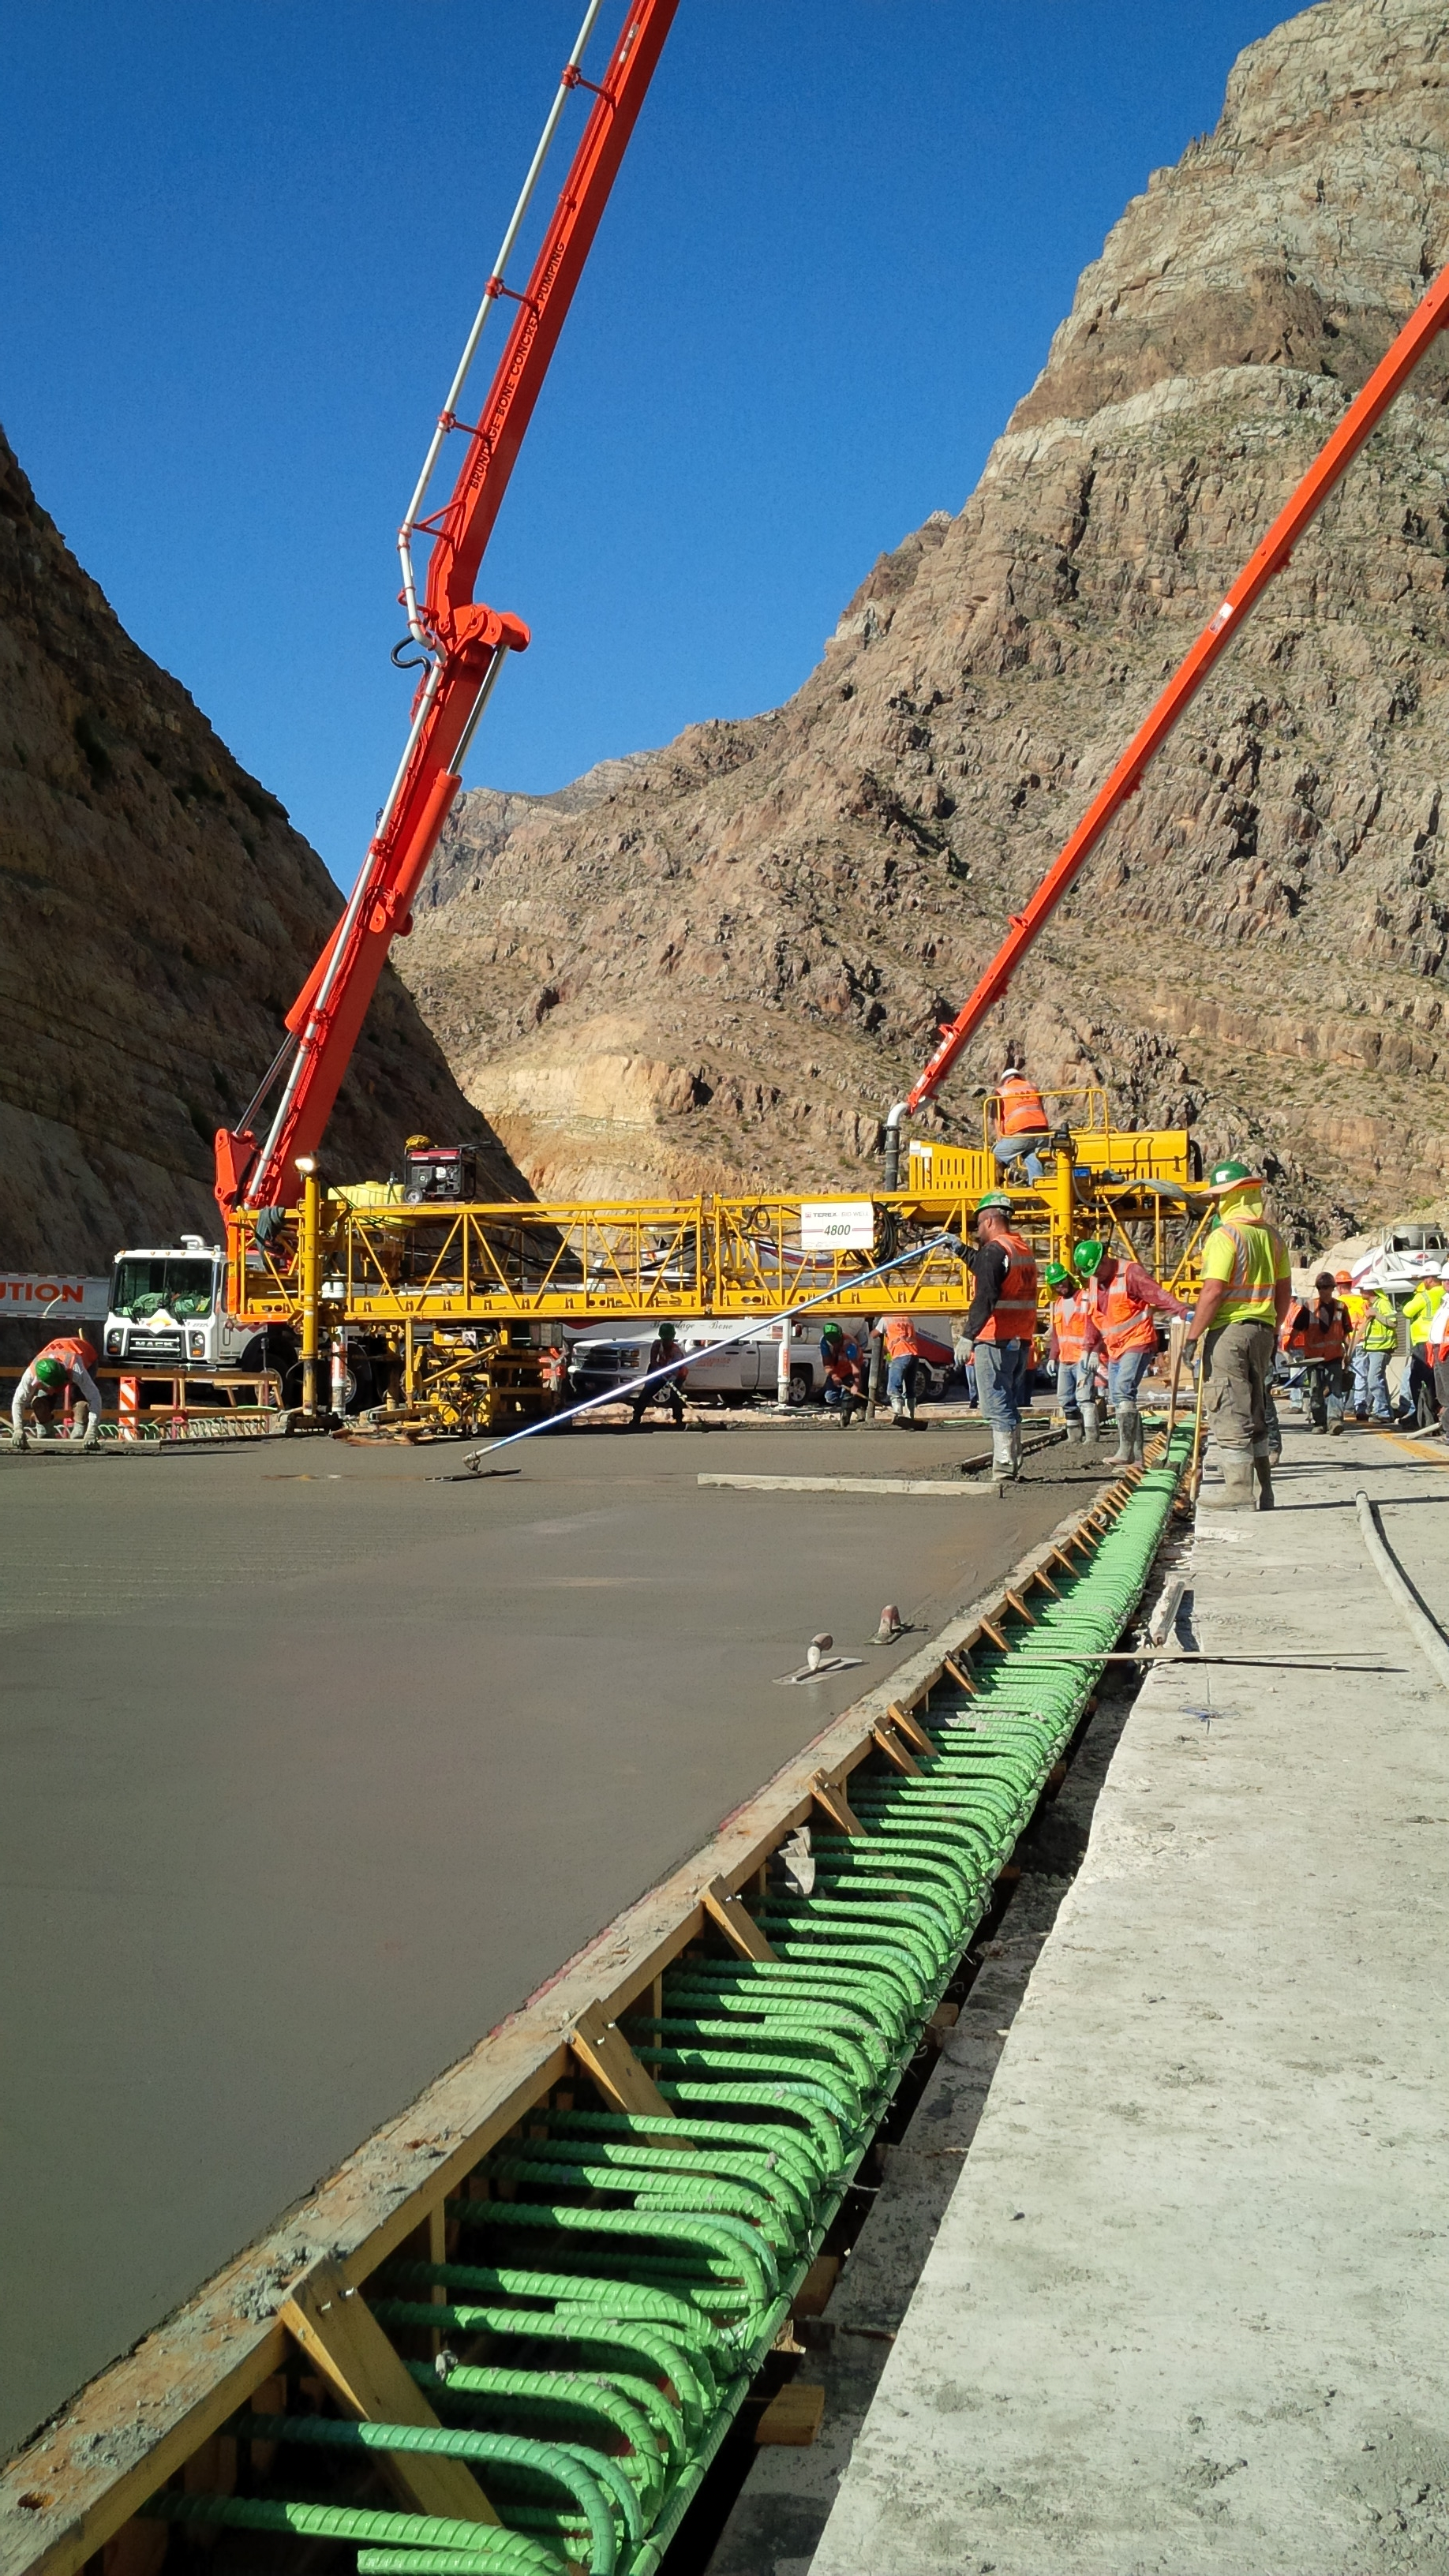 ADOT crews pour concrete for the reconstructed NB Bridge No. 6 on I-15 in the Virgin River Gorge, Mohave County, Arizona, June 1-2, 2015 | Photo courtesy of ADOT, St. George News